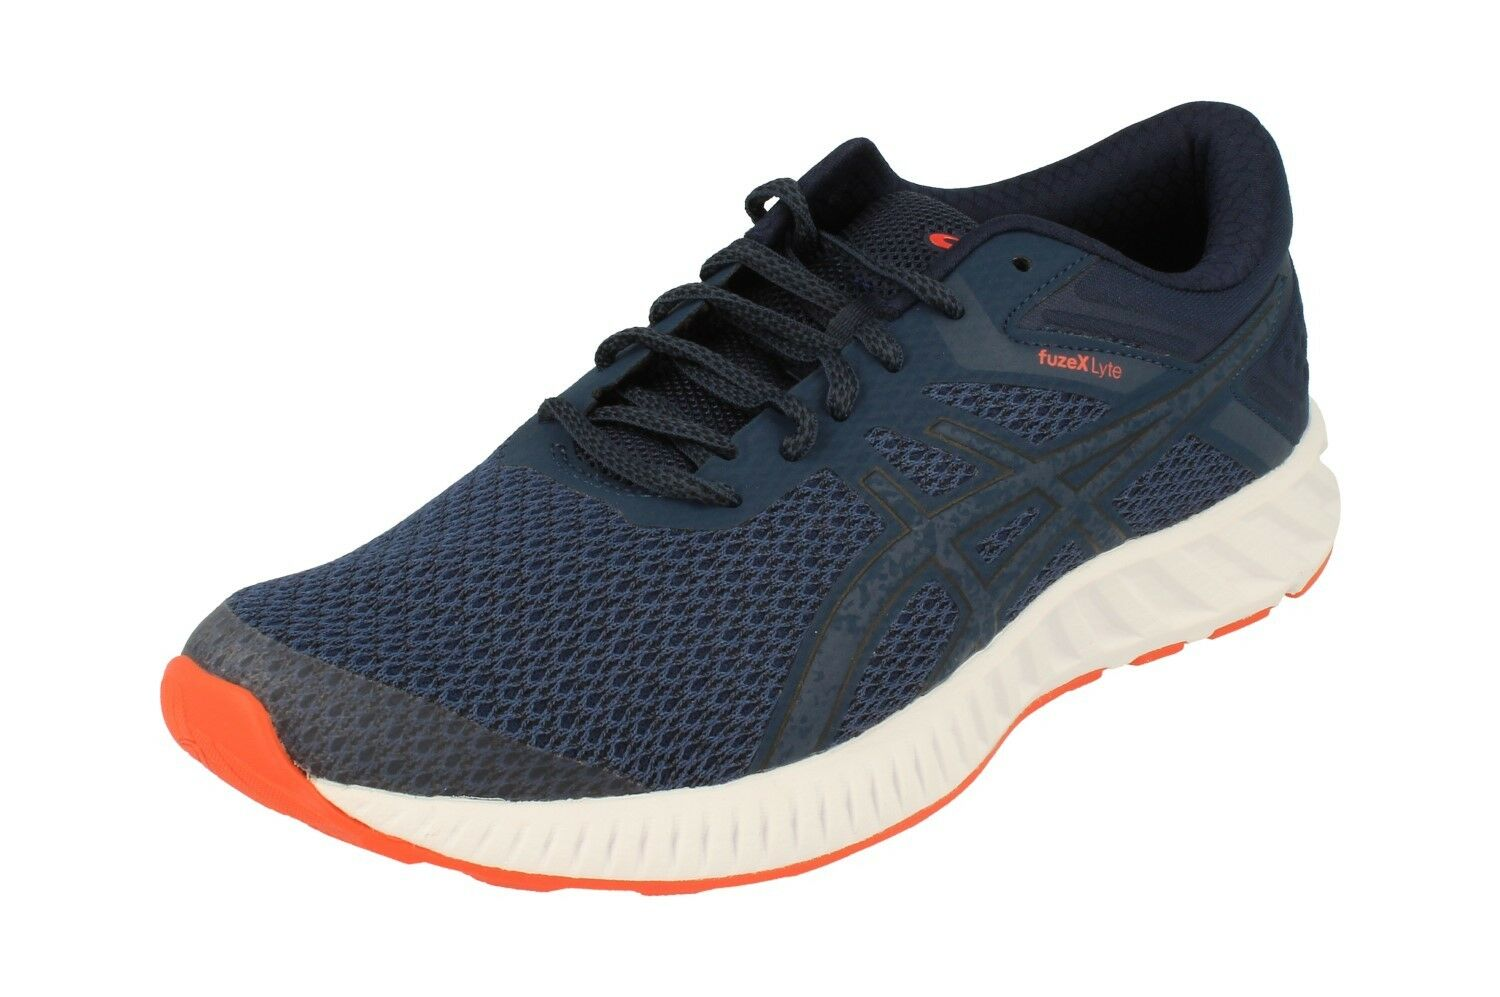 Asics Fusex Lyte 2 Mens Running Trainers T719N zapatillas zapatos zapatos zapatos 5050 10bab5